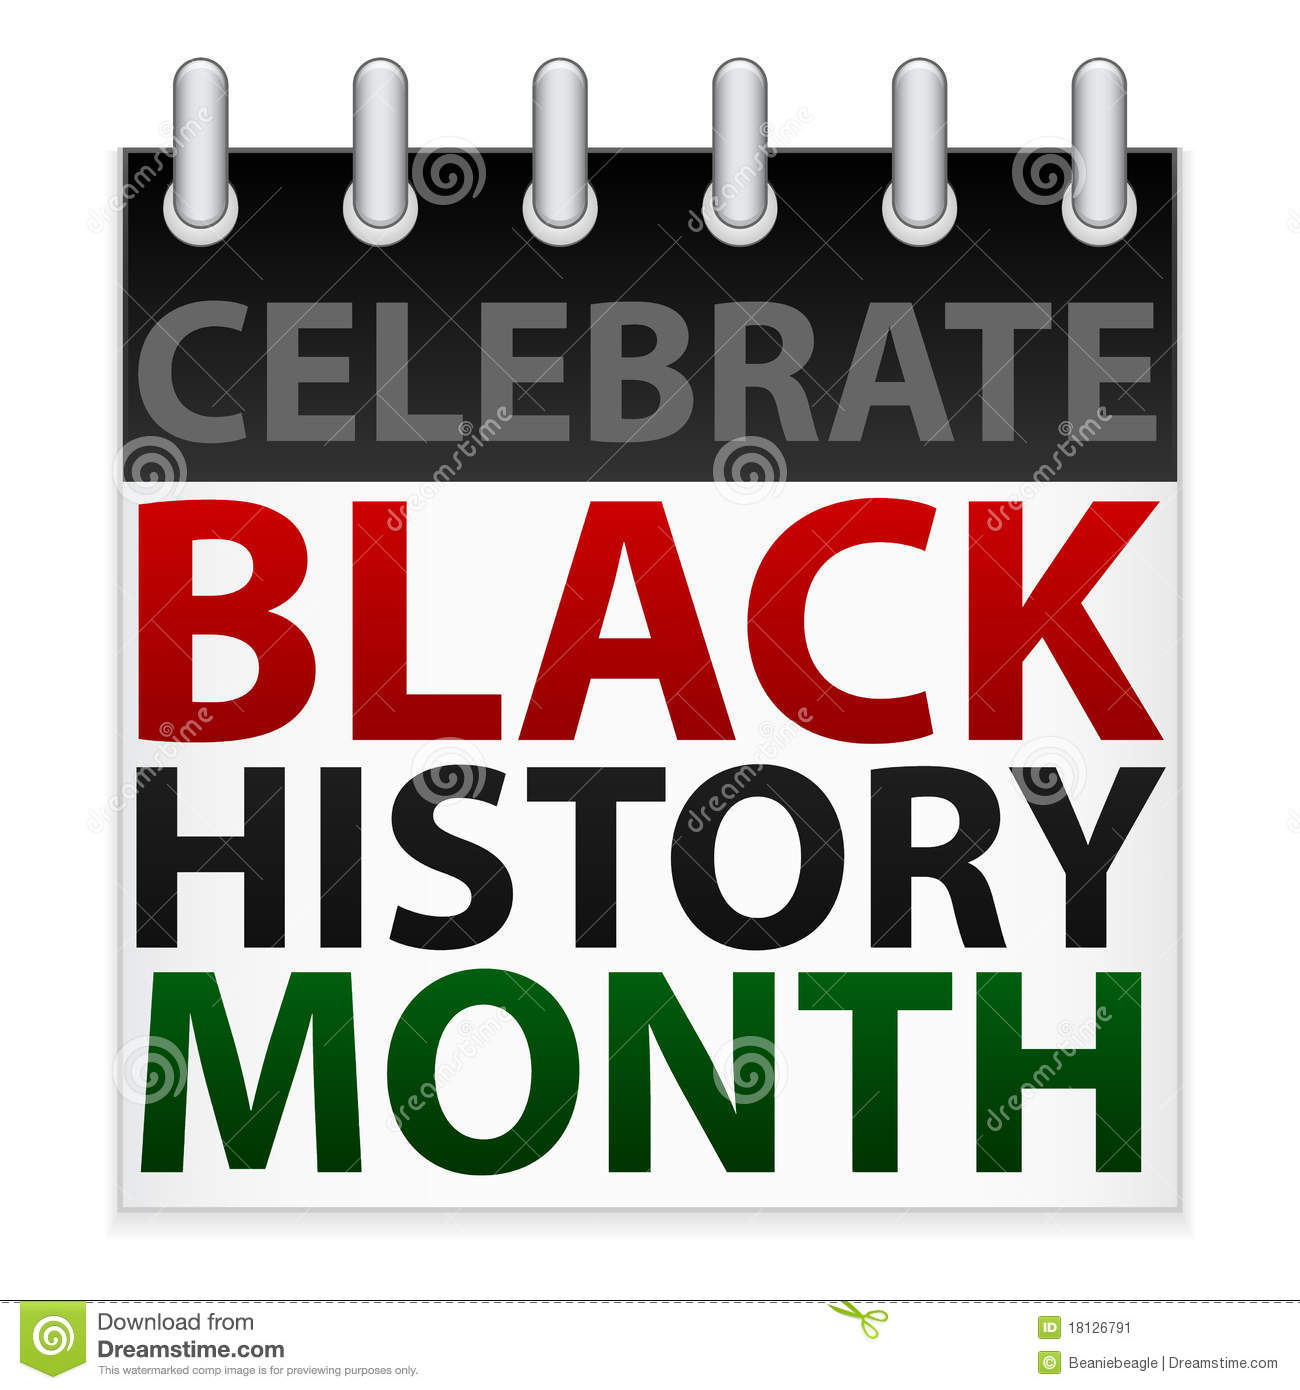 Of A Calendar Icon In Celebration Of Black History Month In February